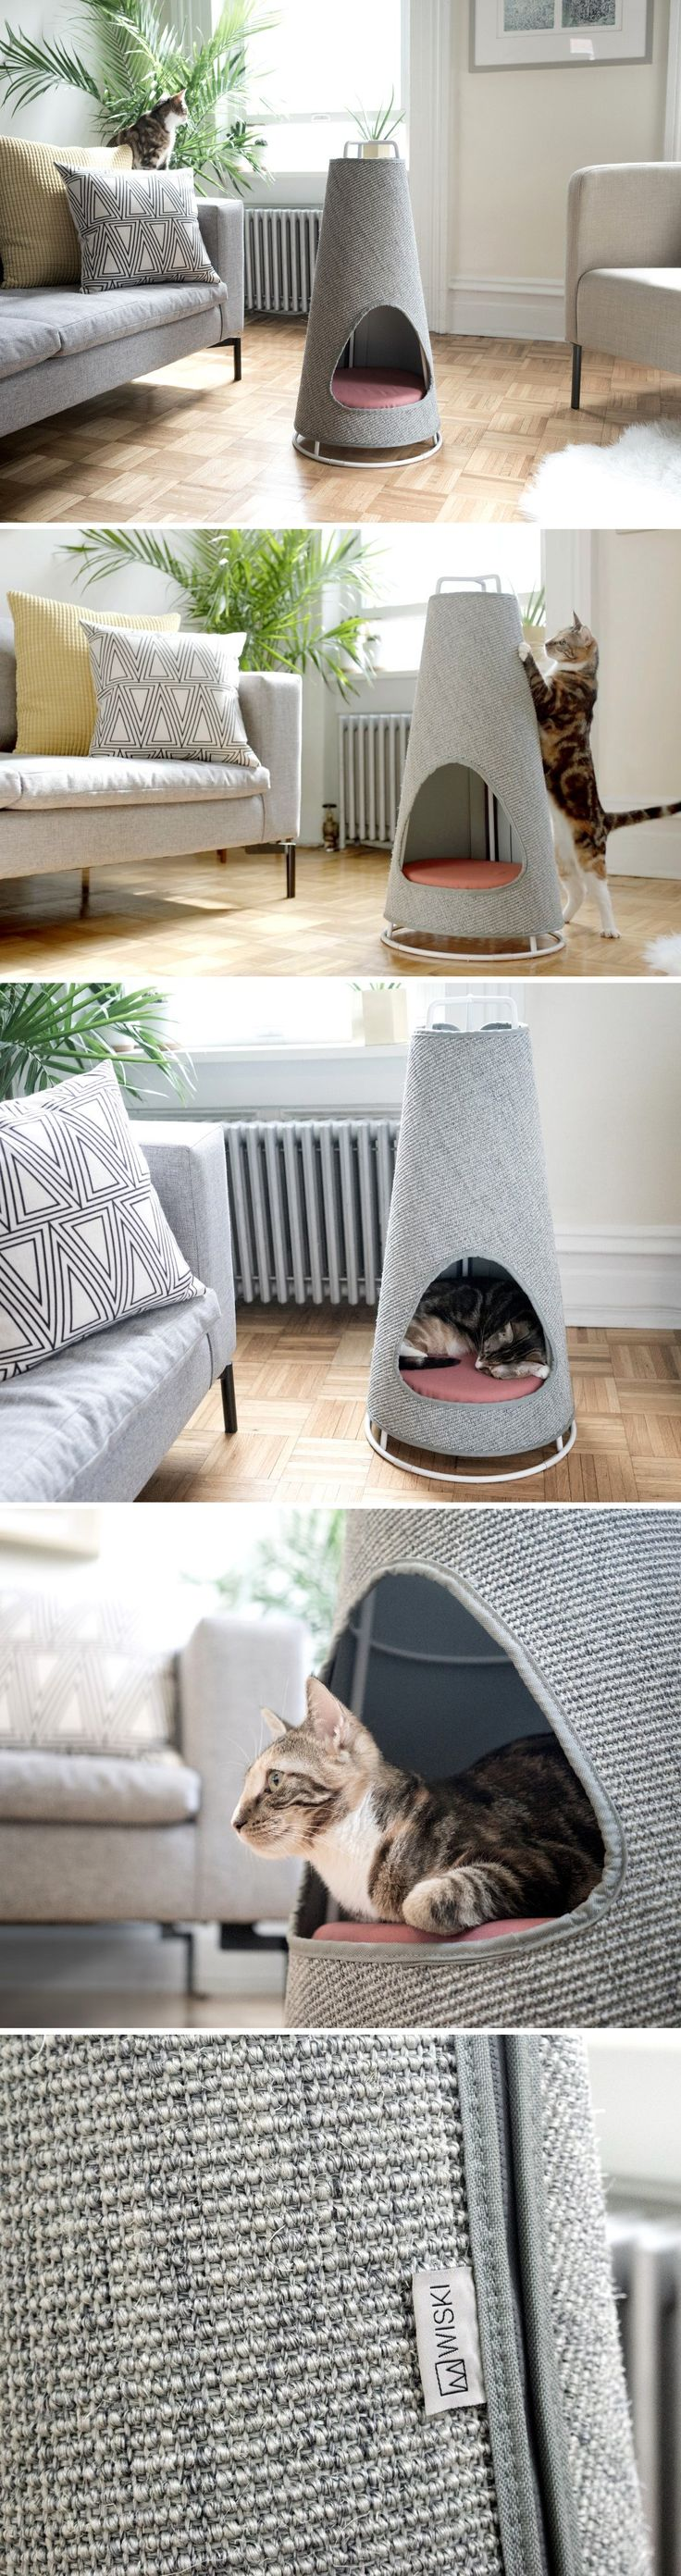 No more shredded sofas. The Cone is the world's most beautiful scratching post and nap space for your cat! It works so well because it takes direct inspiration from nature. The large cats often have a habit of scratching the barks of trees, to mark their territories. The reason domestic cats prefer furniture is because like trees, they are large, sturdy, and don't topple over. The Cone was designed to resemble the tree's bark and stay upright and unmoved.